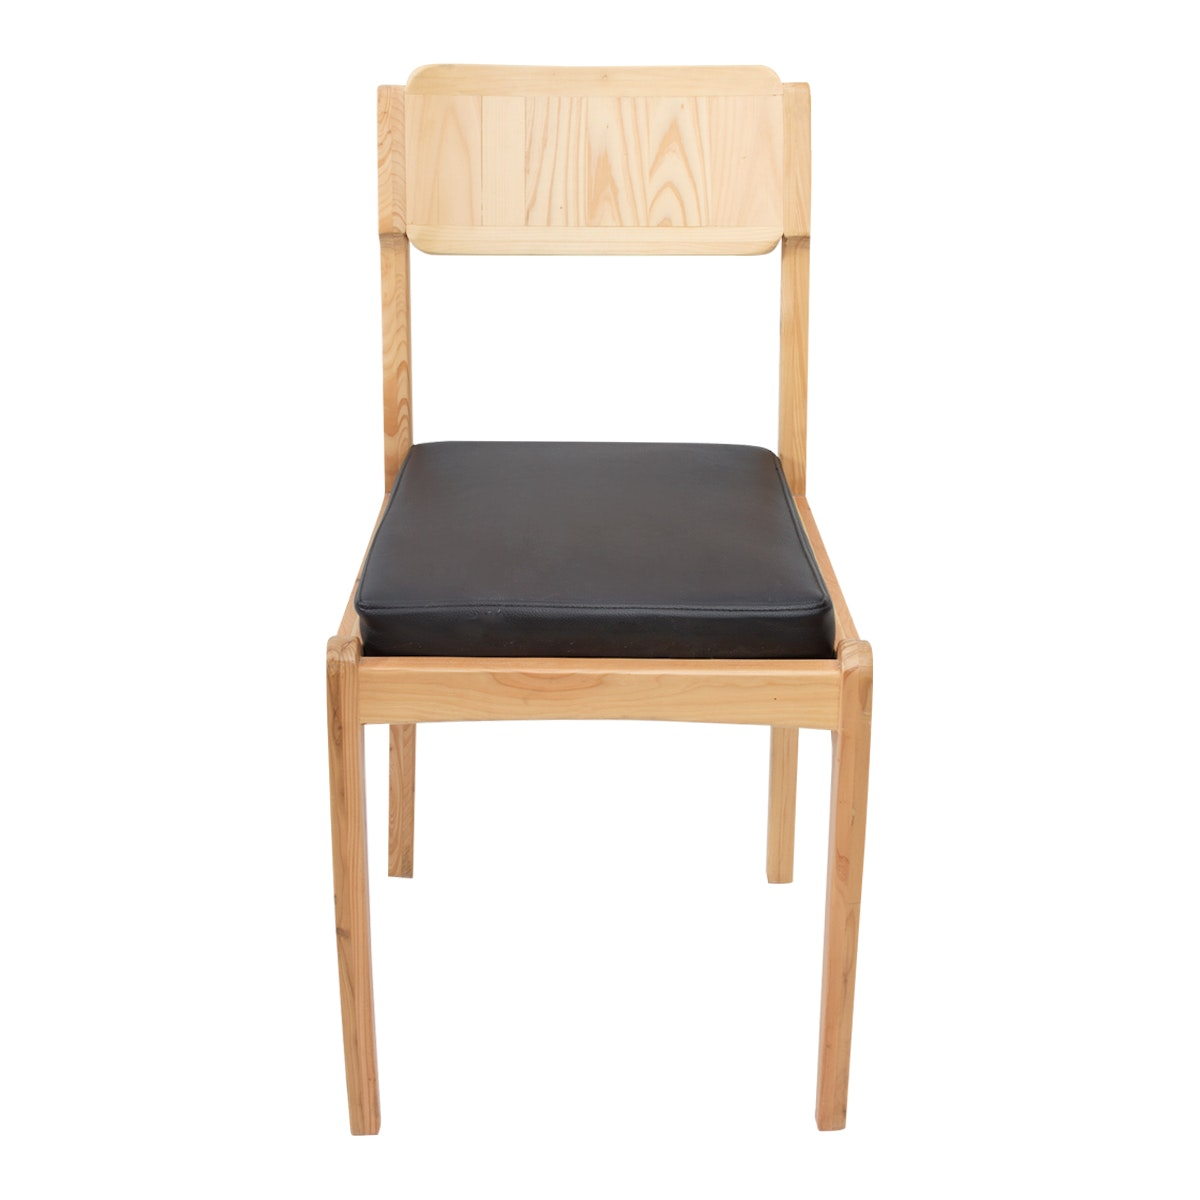 Kreakita Cyclamen Chair